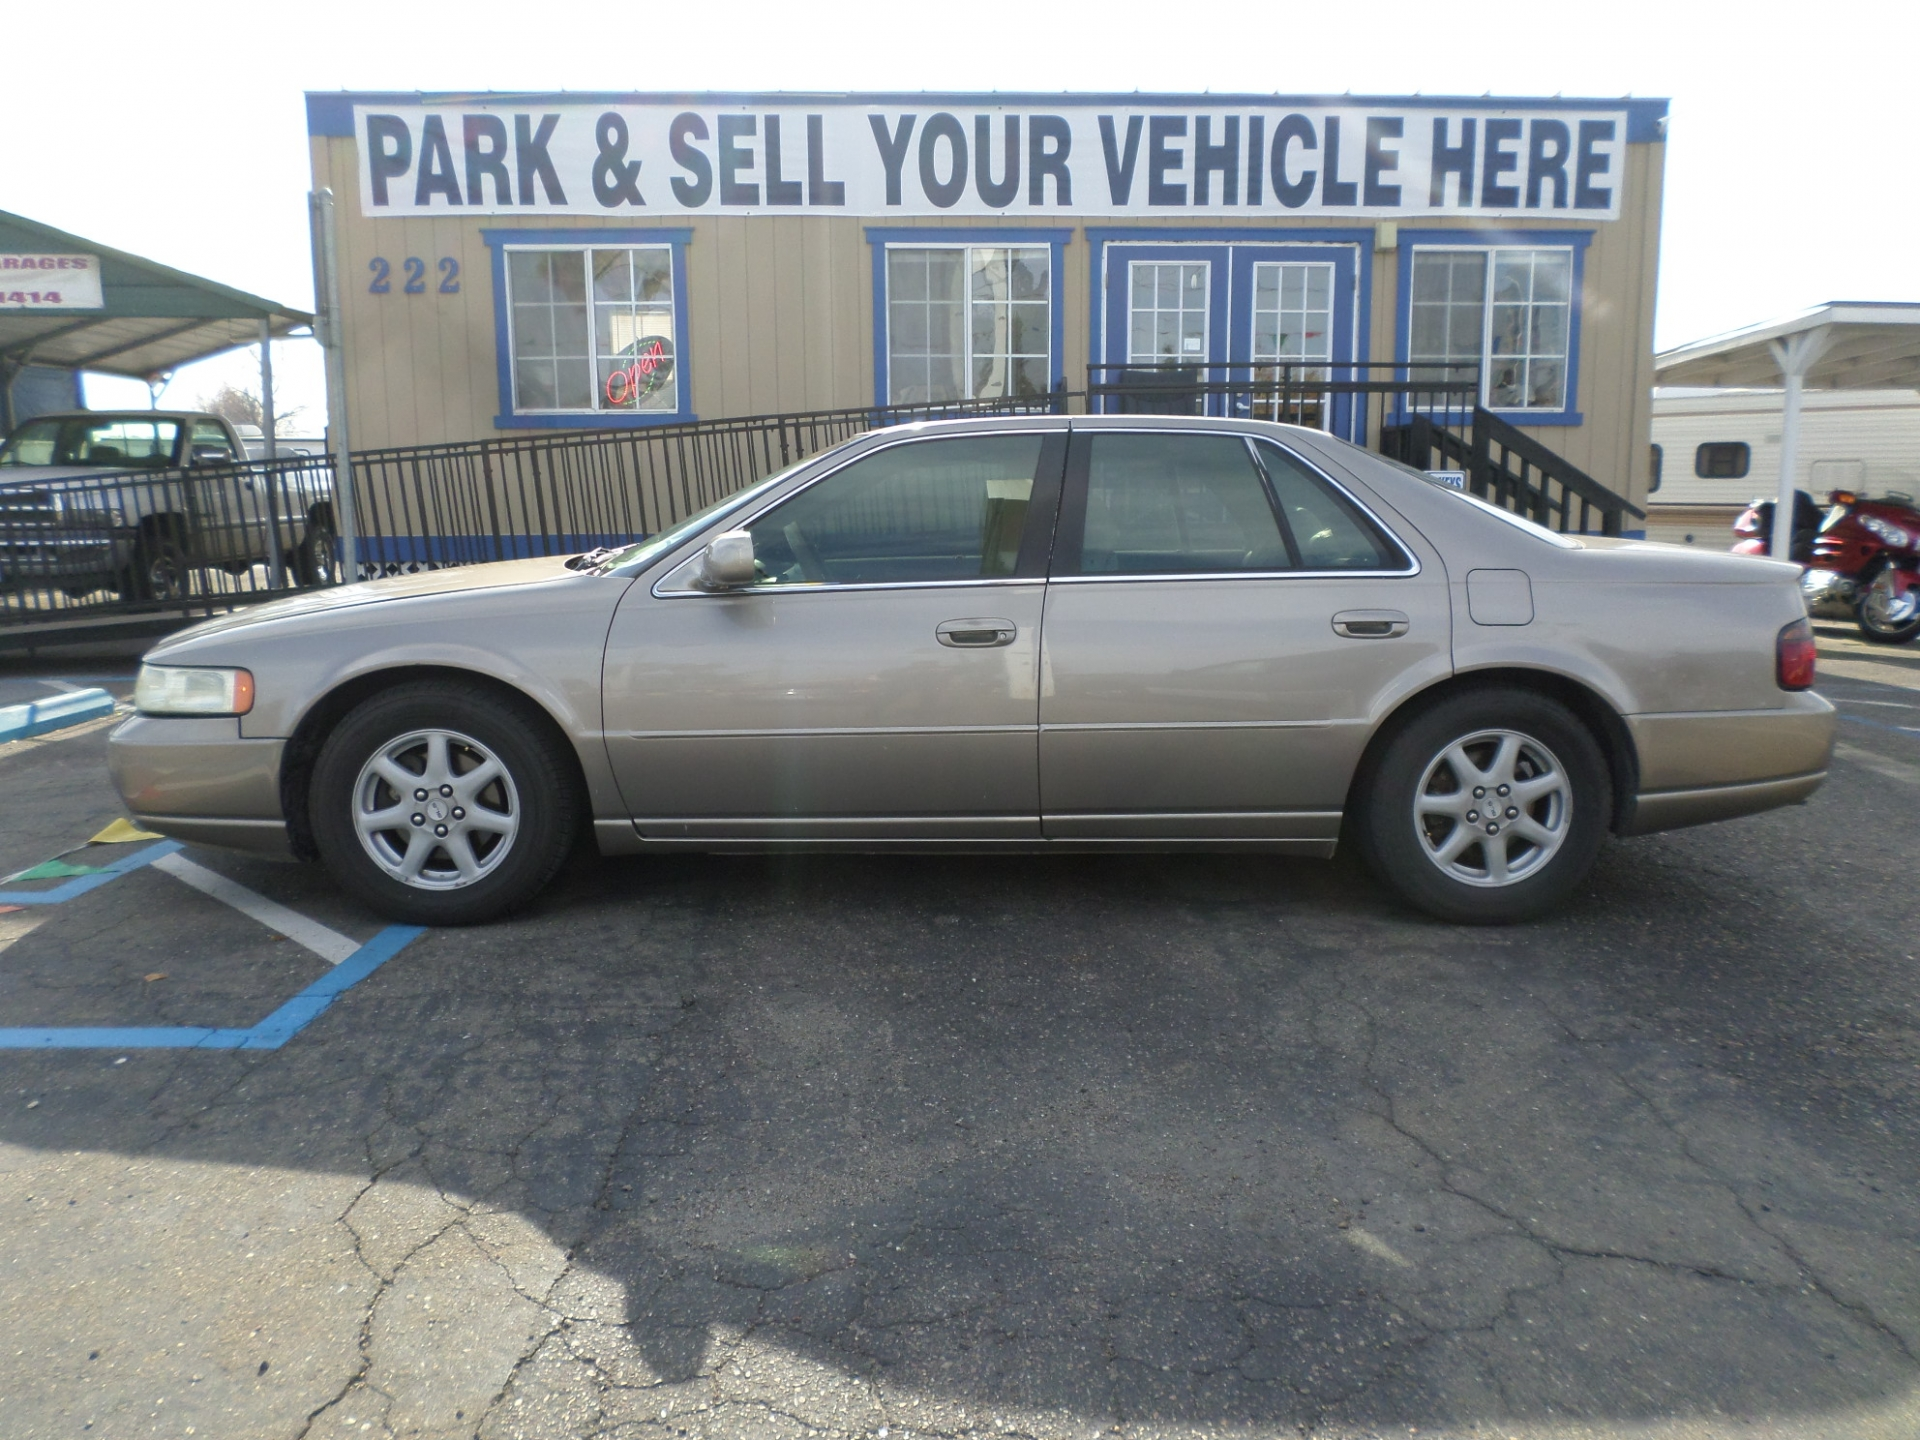 car for sale 2003 cadillac sls in lodi stockton ca lodi park and sell lodi park and sell